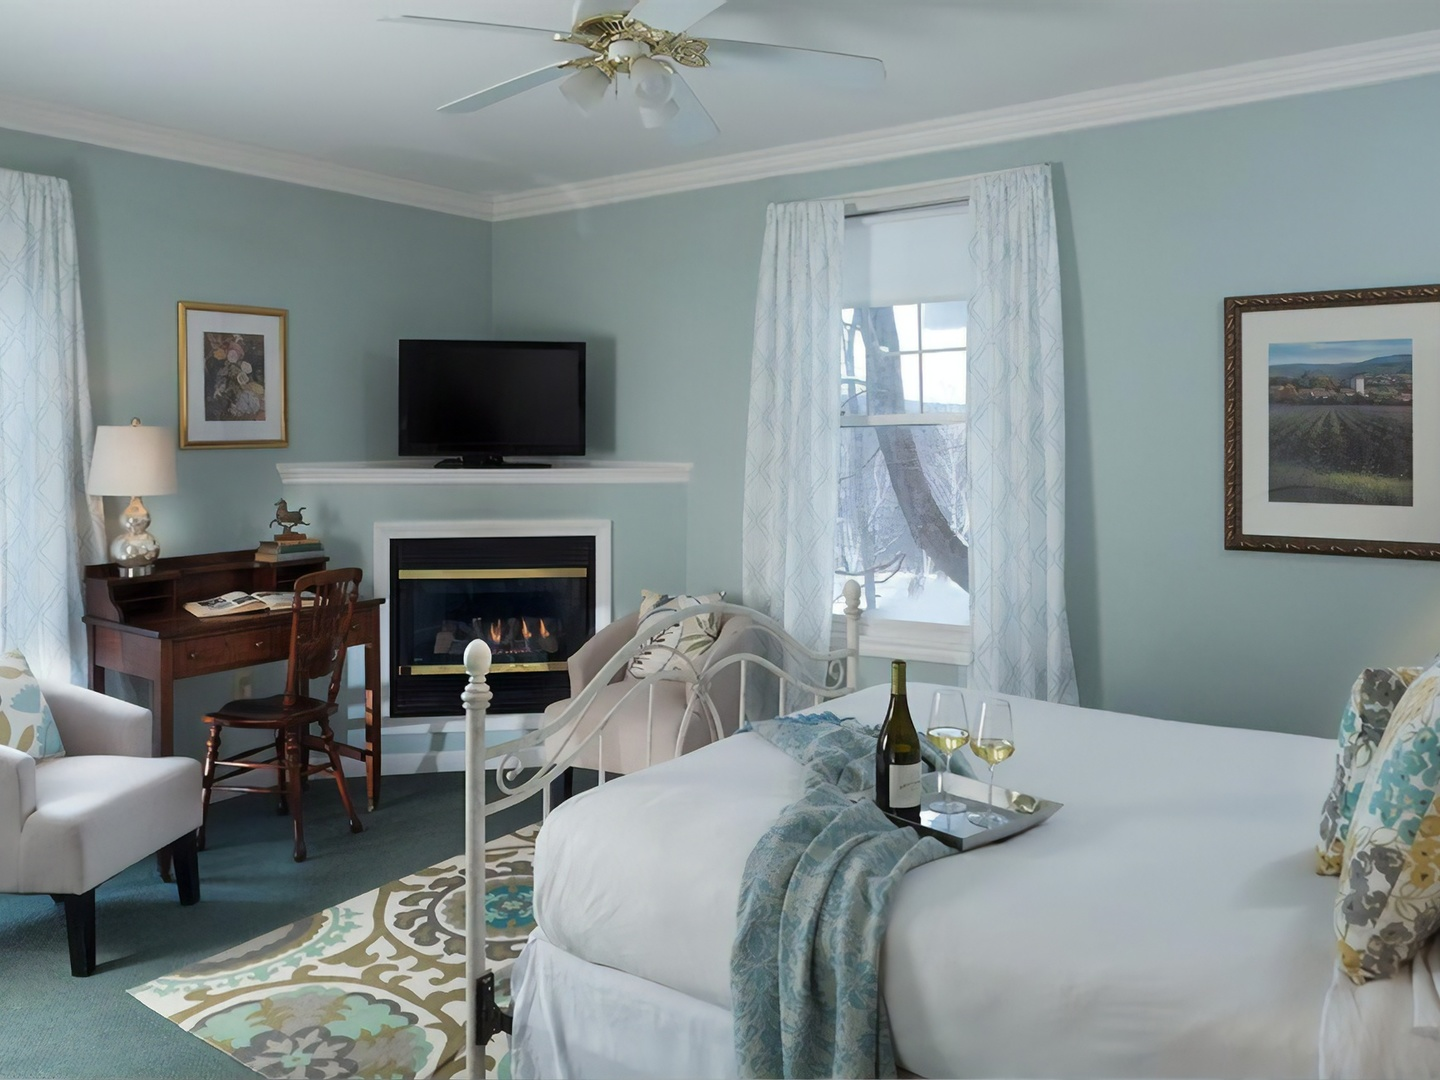 A bedroom with a bed and a chair in a room at Hampton Terrace Inn.